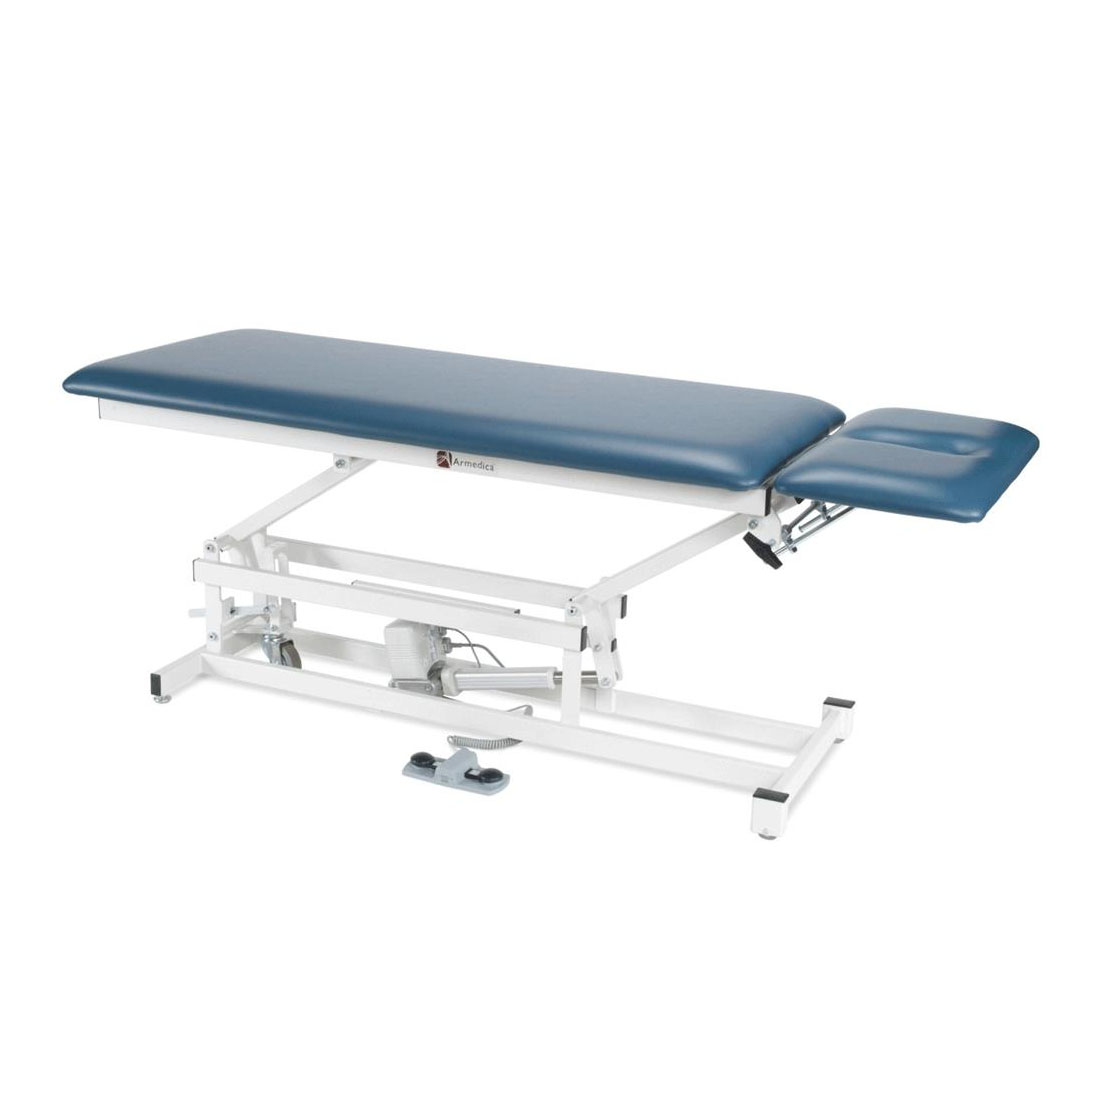 Armedica AM-200 treatment table